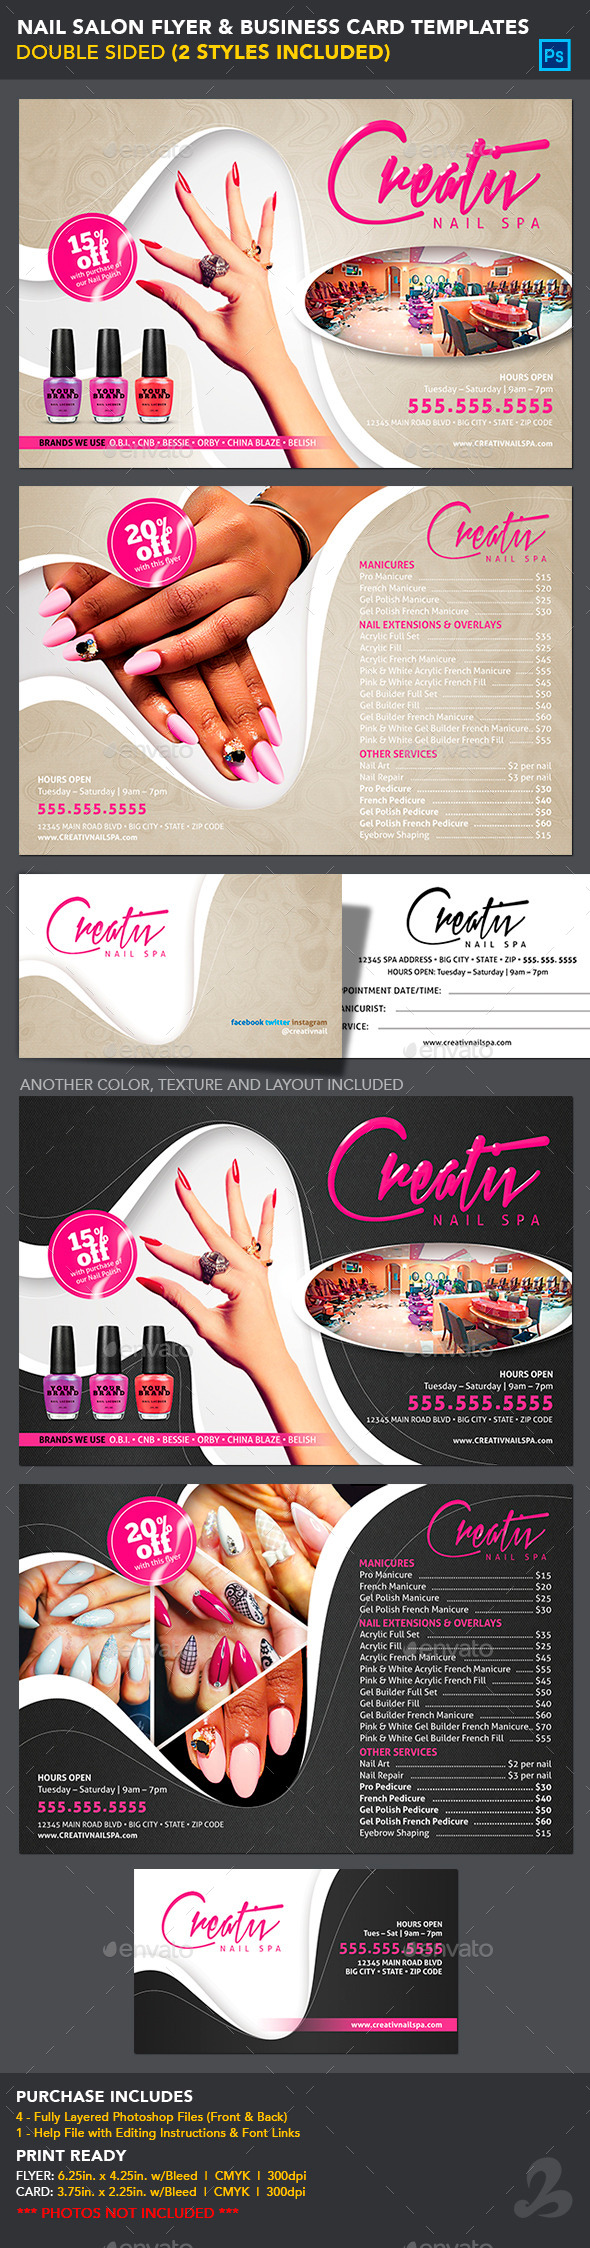 Nail Salon Flyer & Business Card Templates by CreativB | GraphicRiver